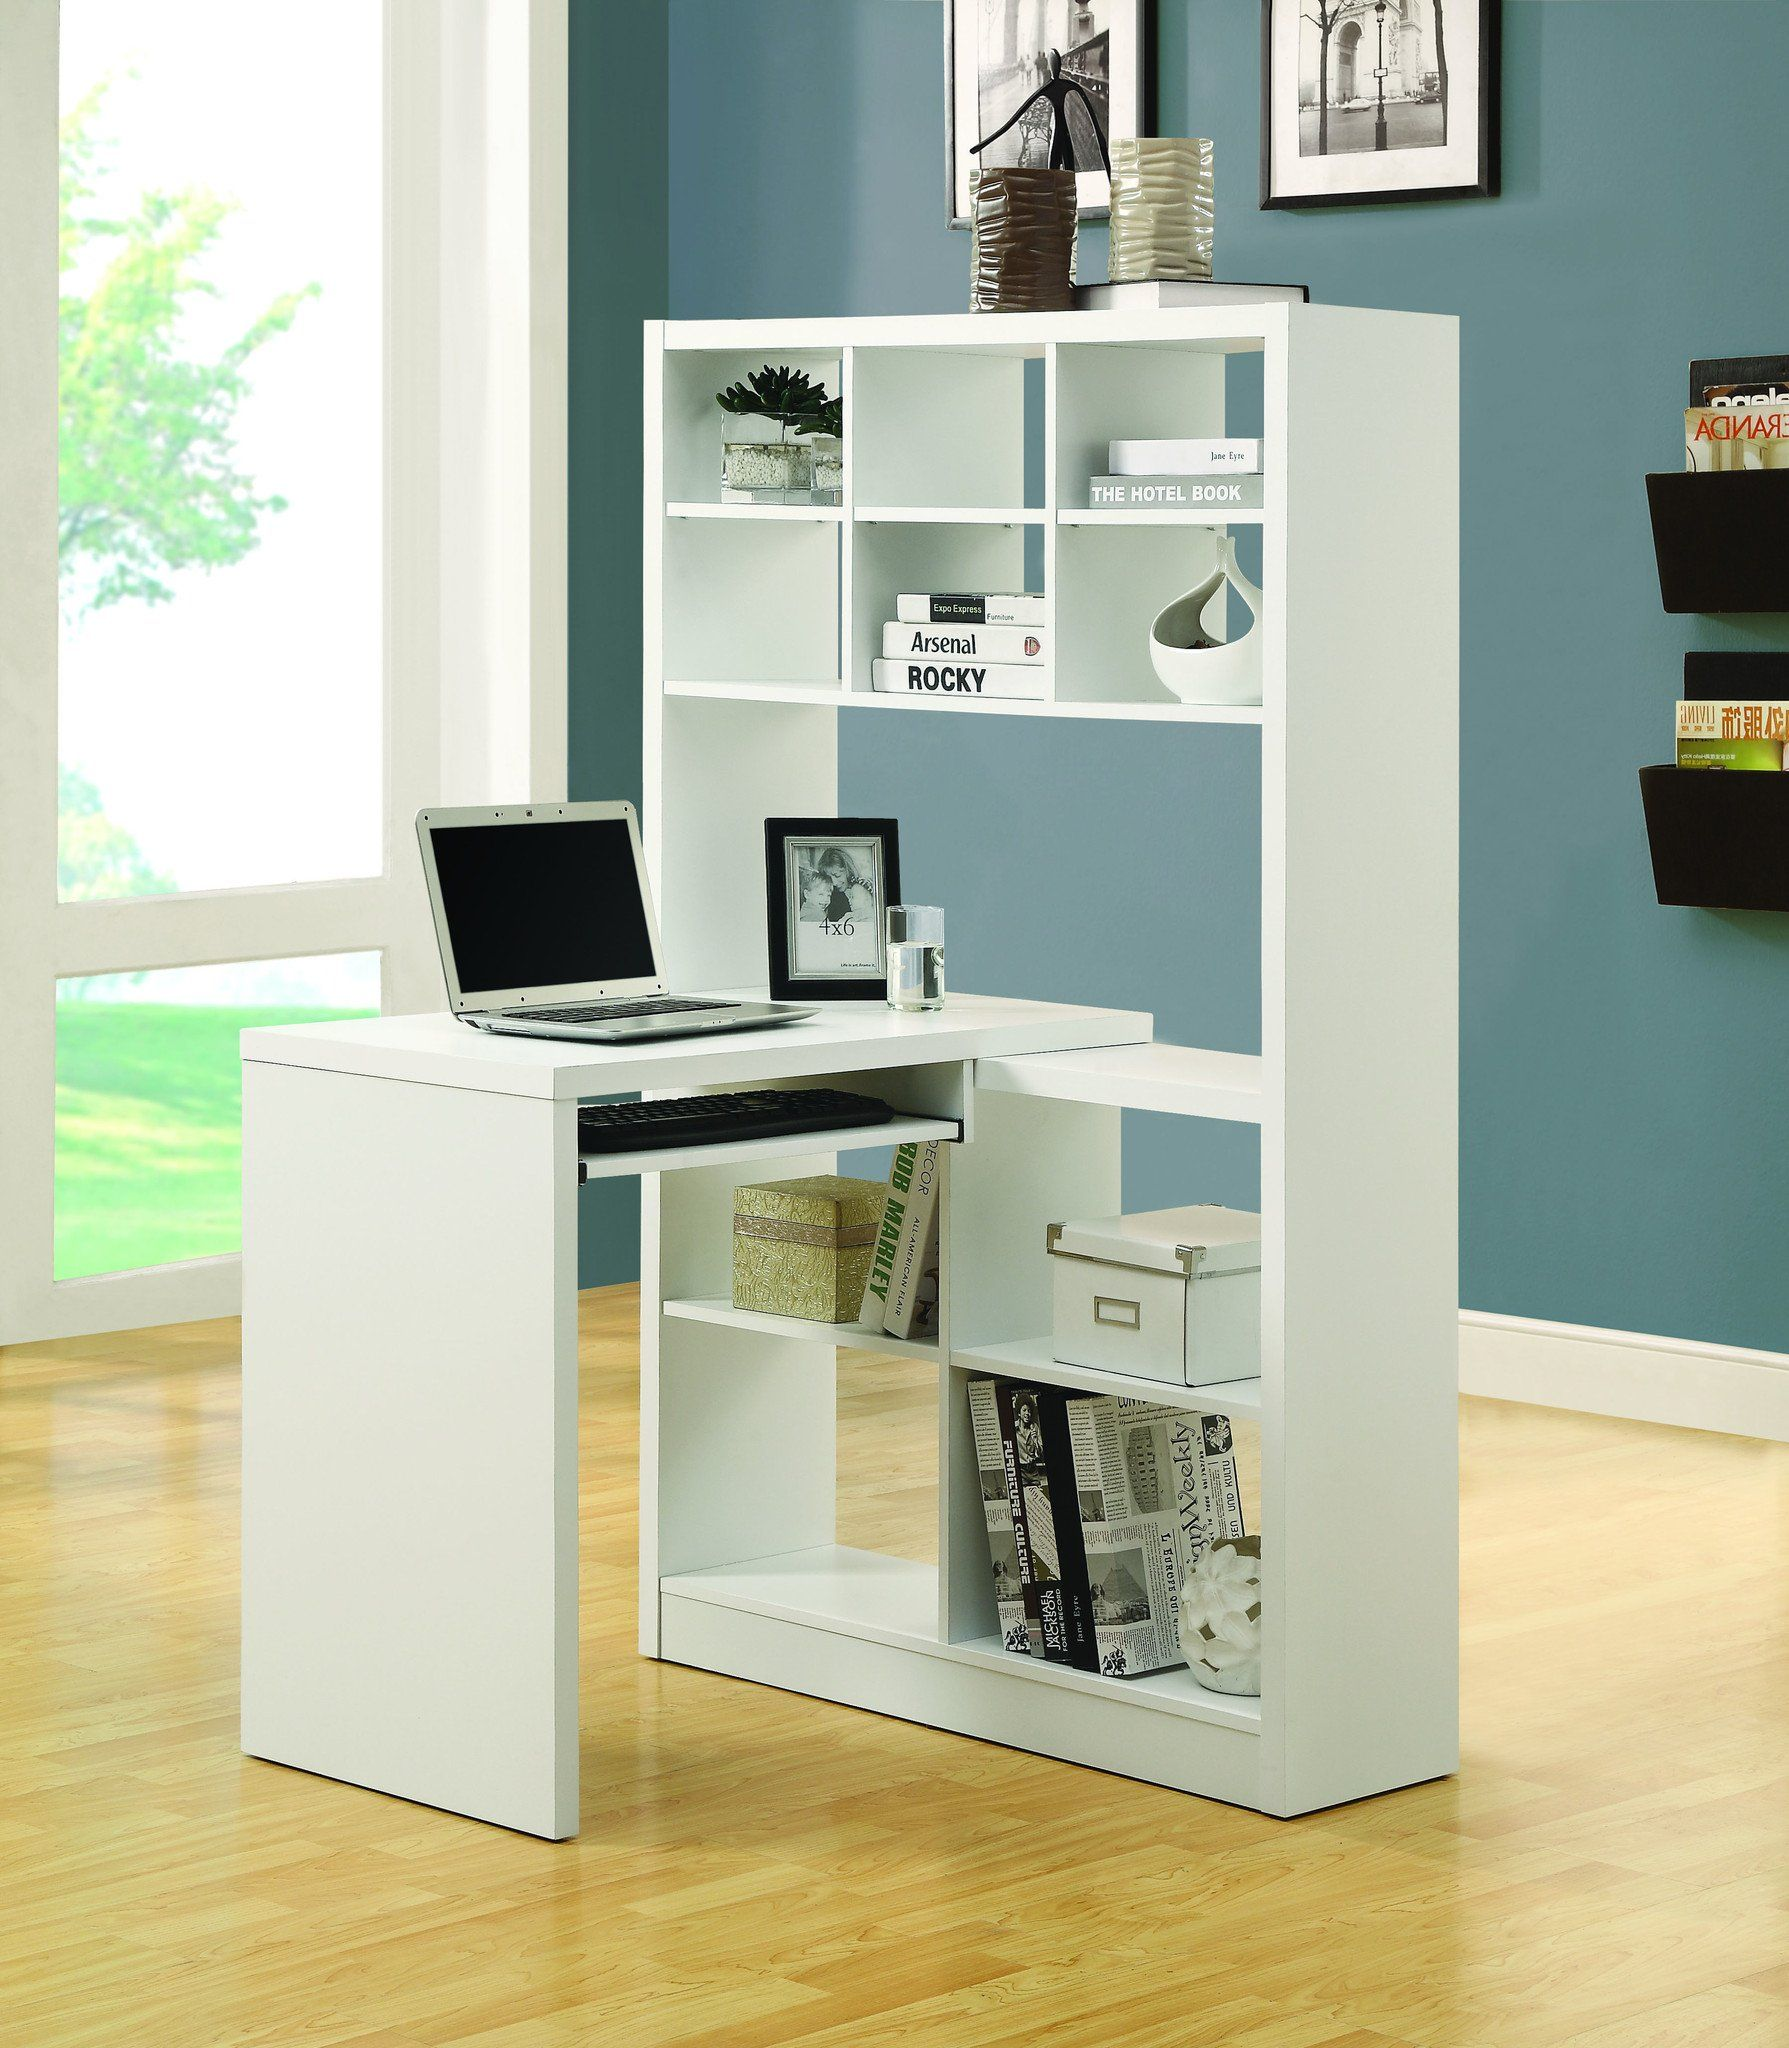 Contemporary White Desk Bookcase Combination Home Office Design White Desk With Bookcase Bookshelf Desk